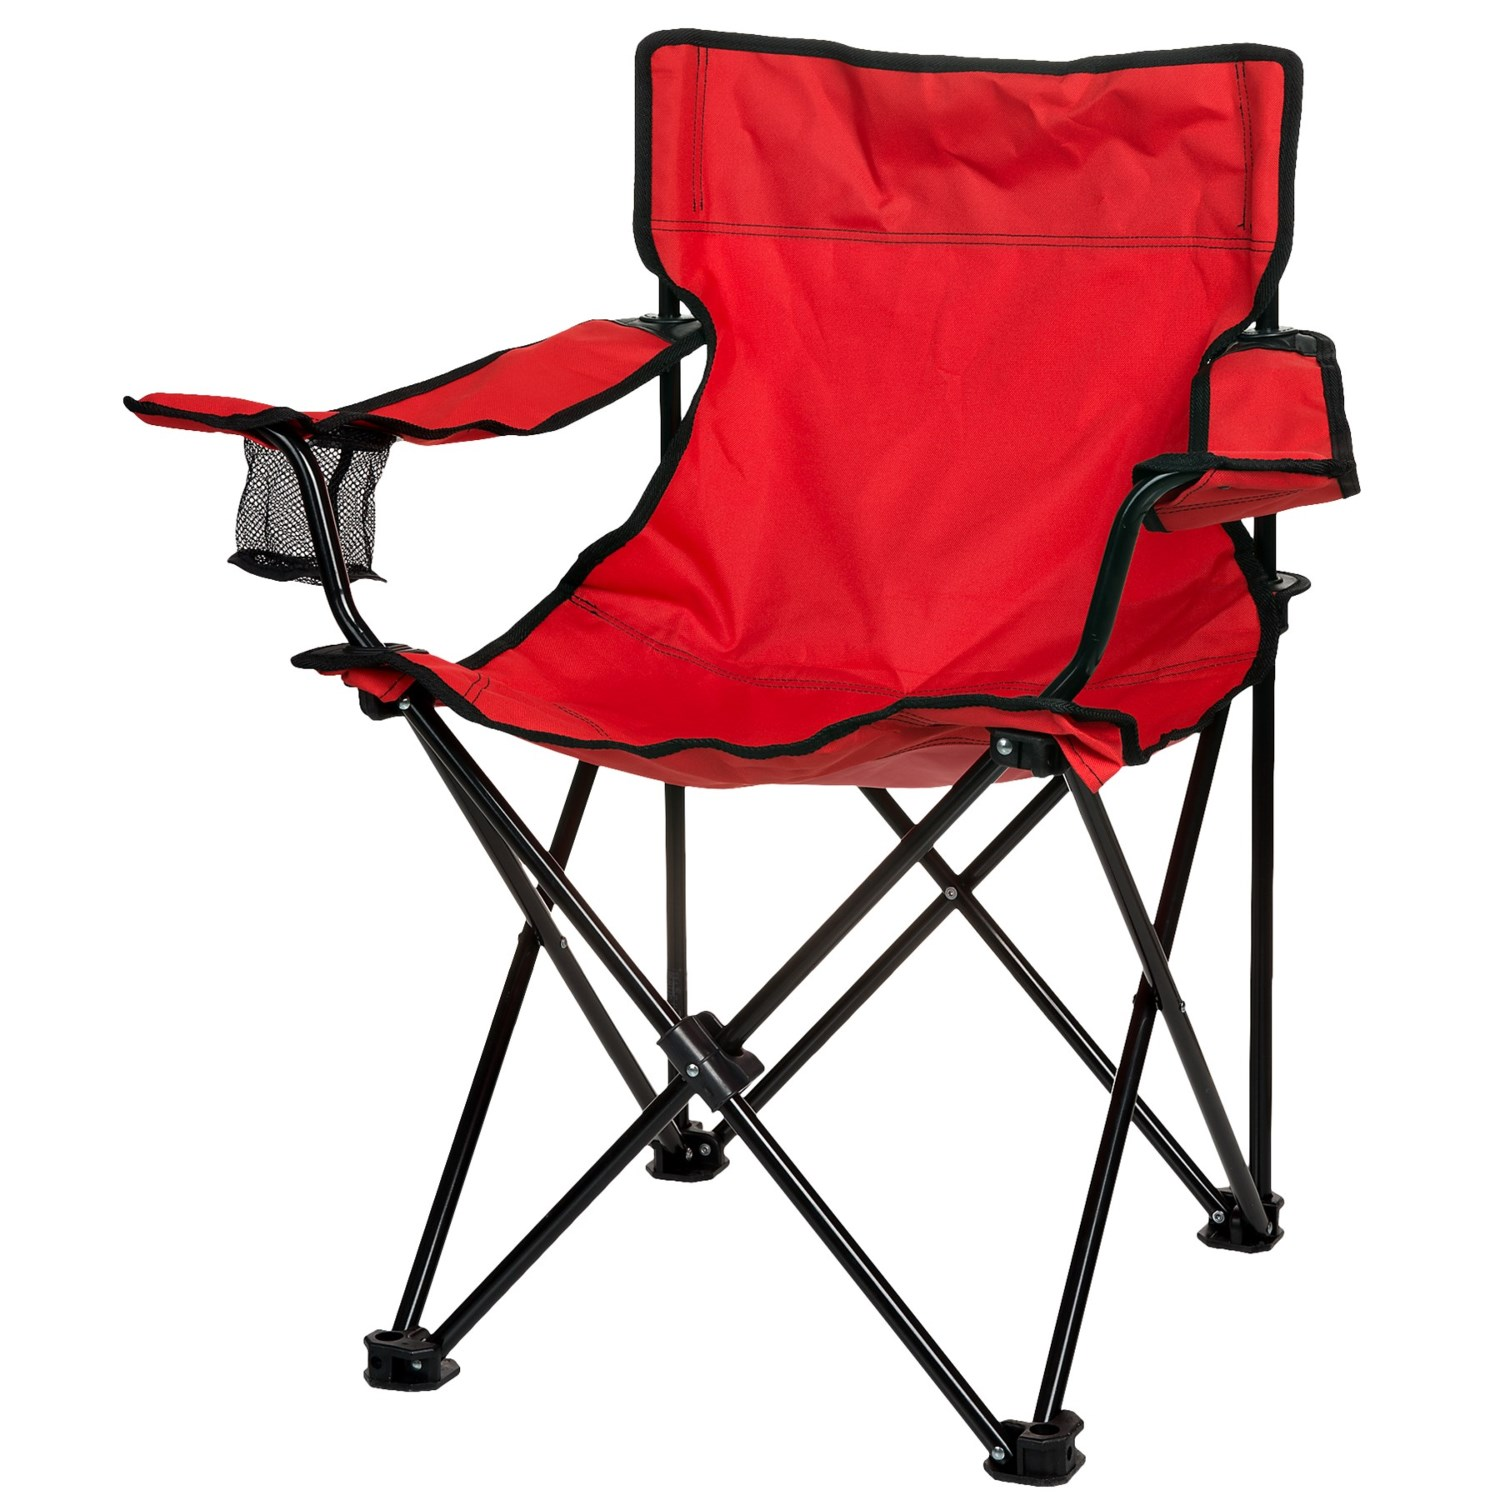 Camper Chairs Travelchair Easy Rider C Series Camp Chair Save 58